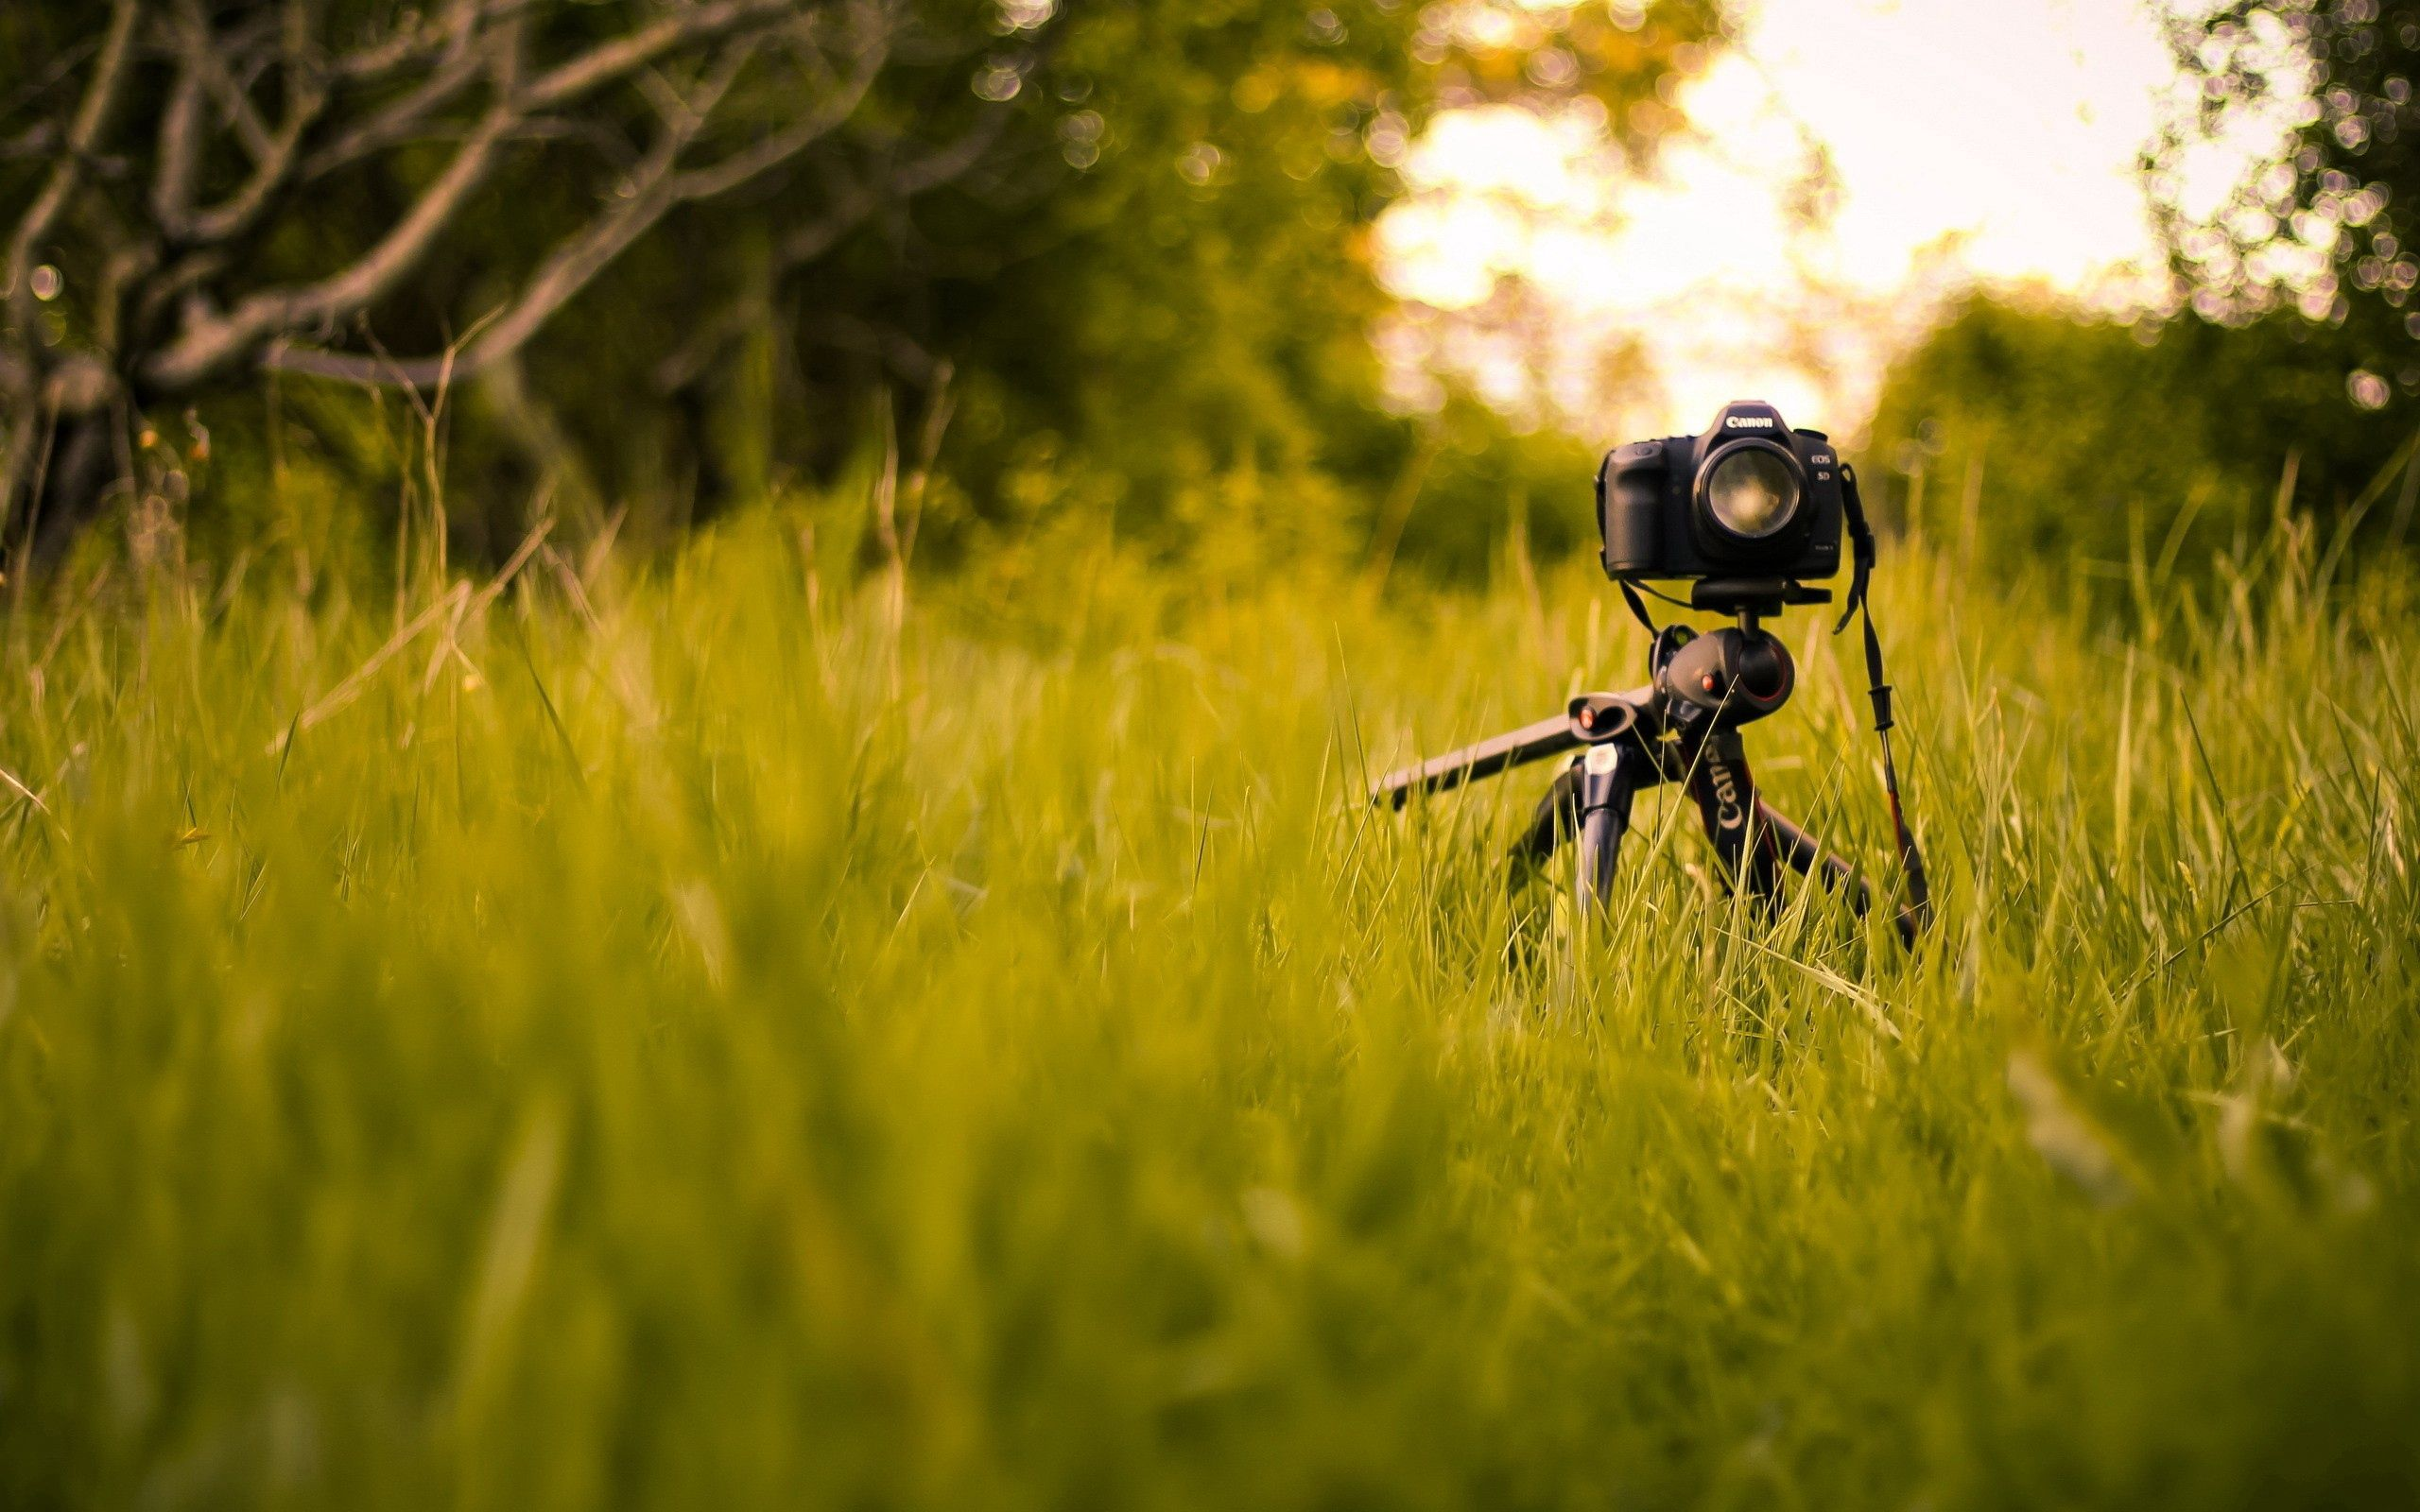 82849 download wallpaper Grass, Miscellanea, Miscellaneous, Camera, Tripod screensavers and pictures for free